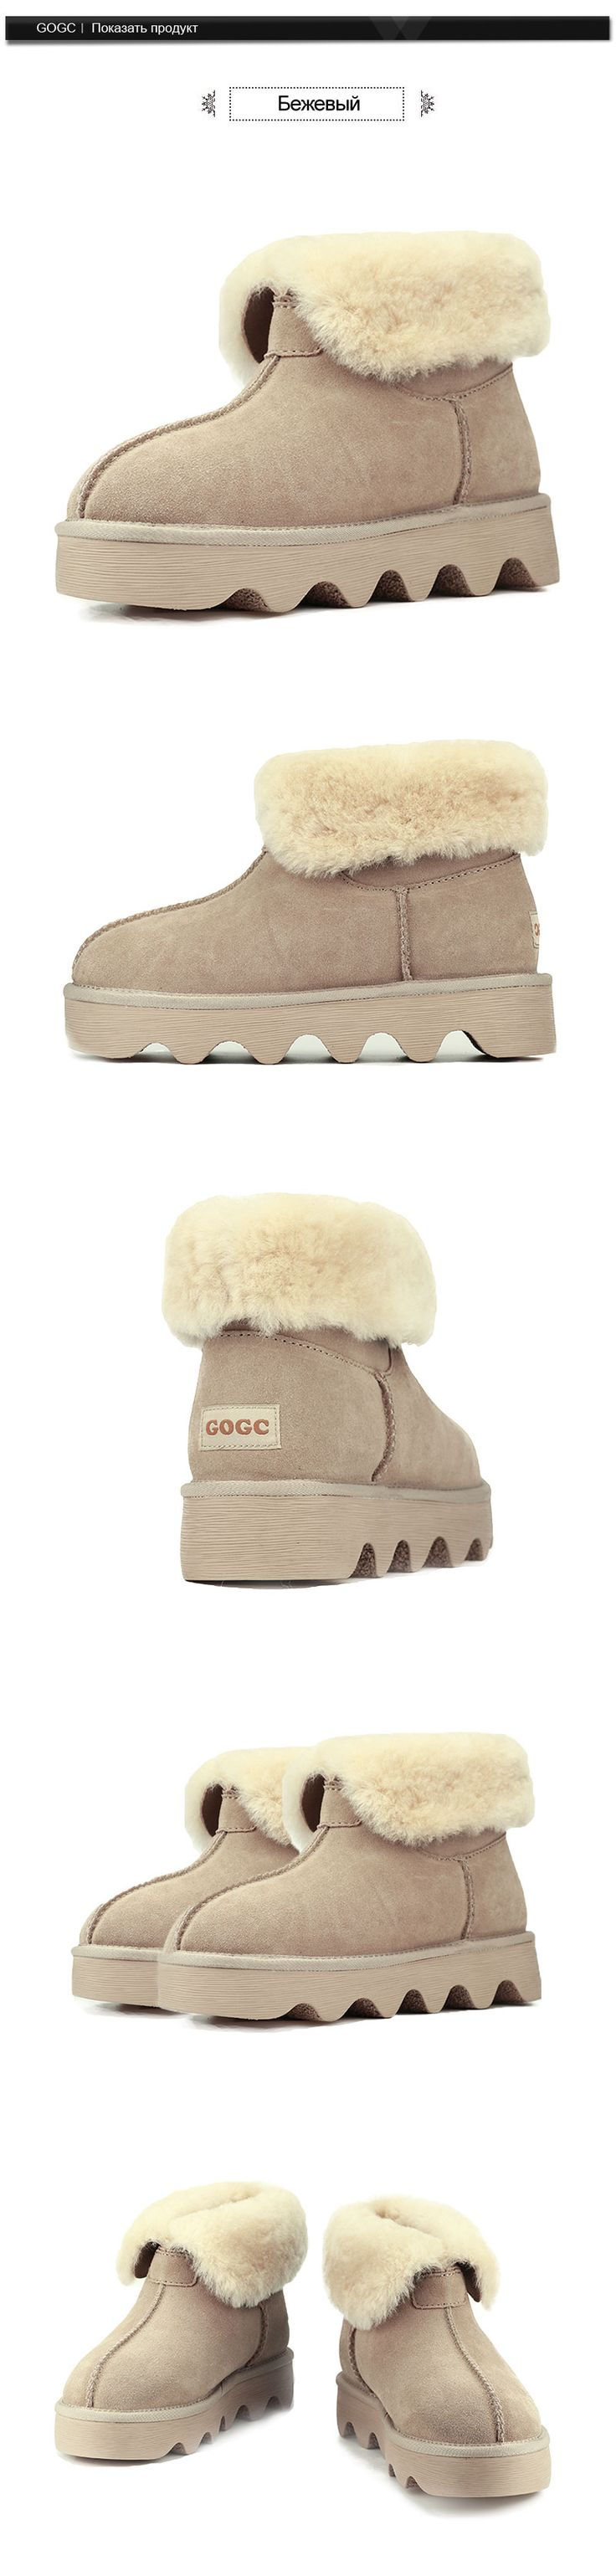 GOGC 2017 Snowshoes Women's Winter Boots with Wool Fur Comfortable Ankle Women Boots Genuine Leather Women's Winter Shoes Casual-in Snow Boots from Shoes on Aliexpress.com | Alibaba Group